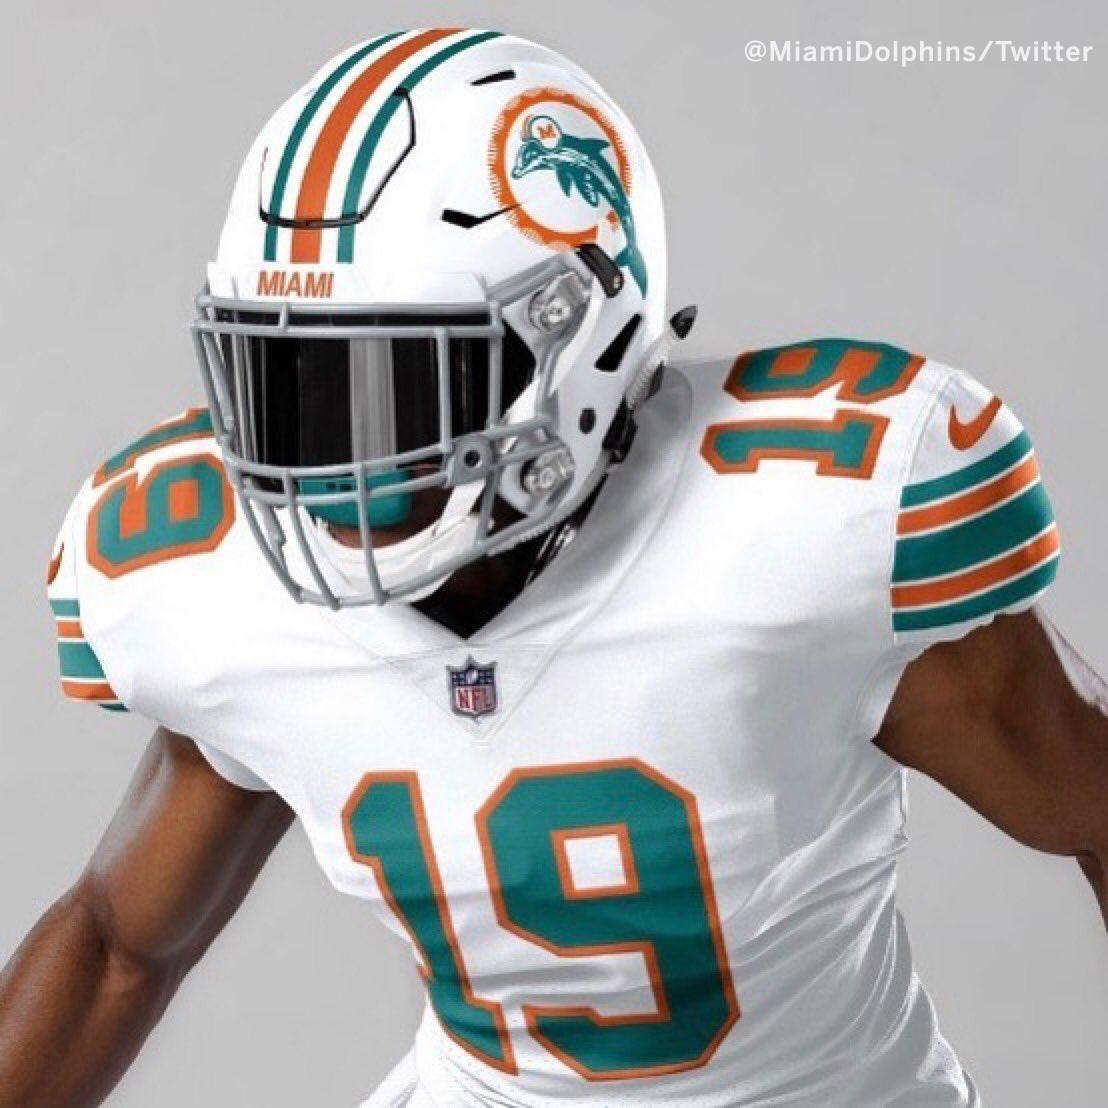 The Dolphins will rock these throwback unis Week 2 against the Patriots this season  (via @MiamiDolphins) <br>http://pic.twitter.com/gzcIwHWrpe